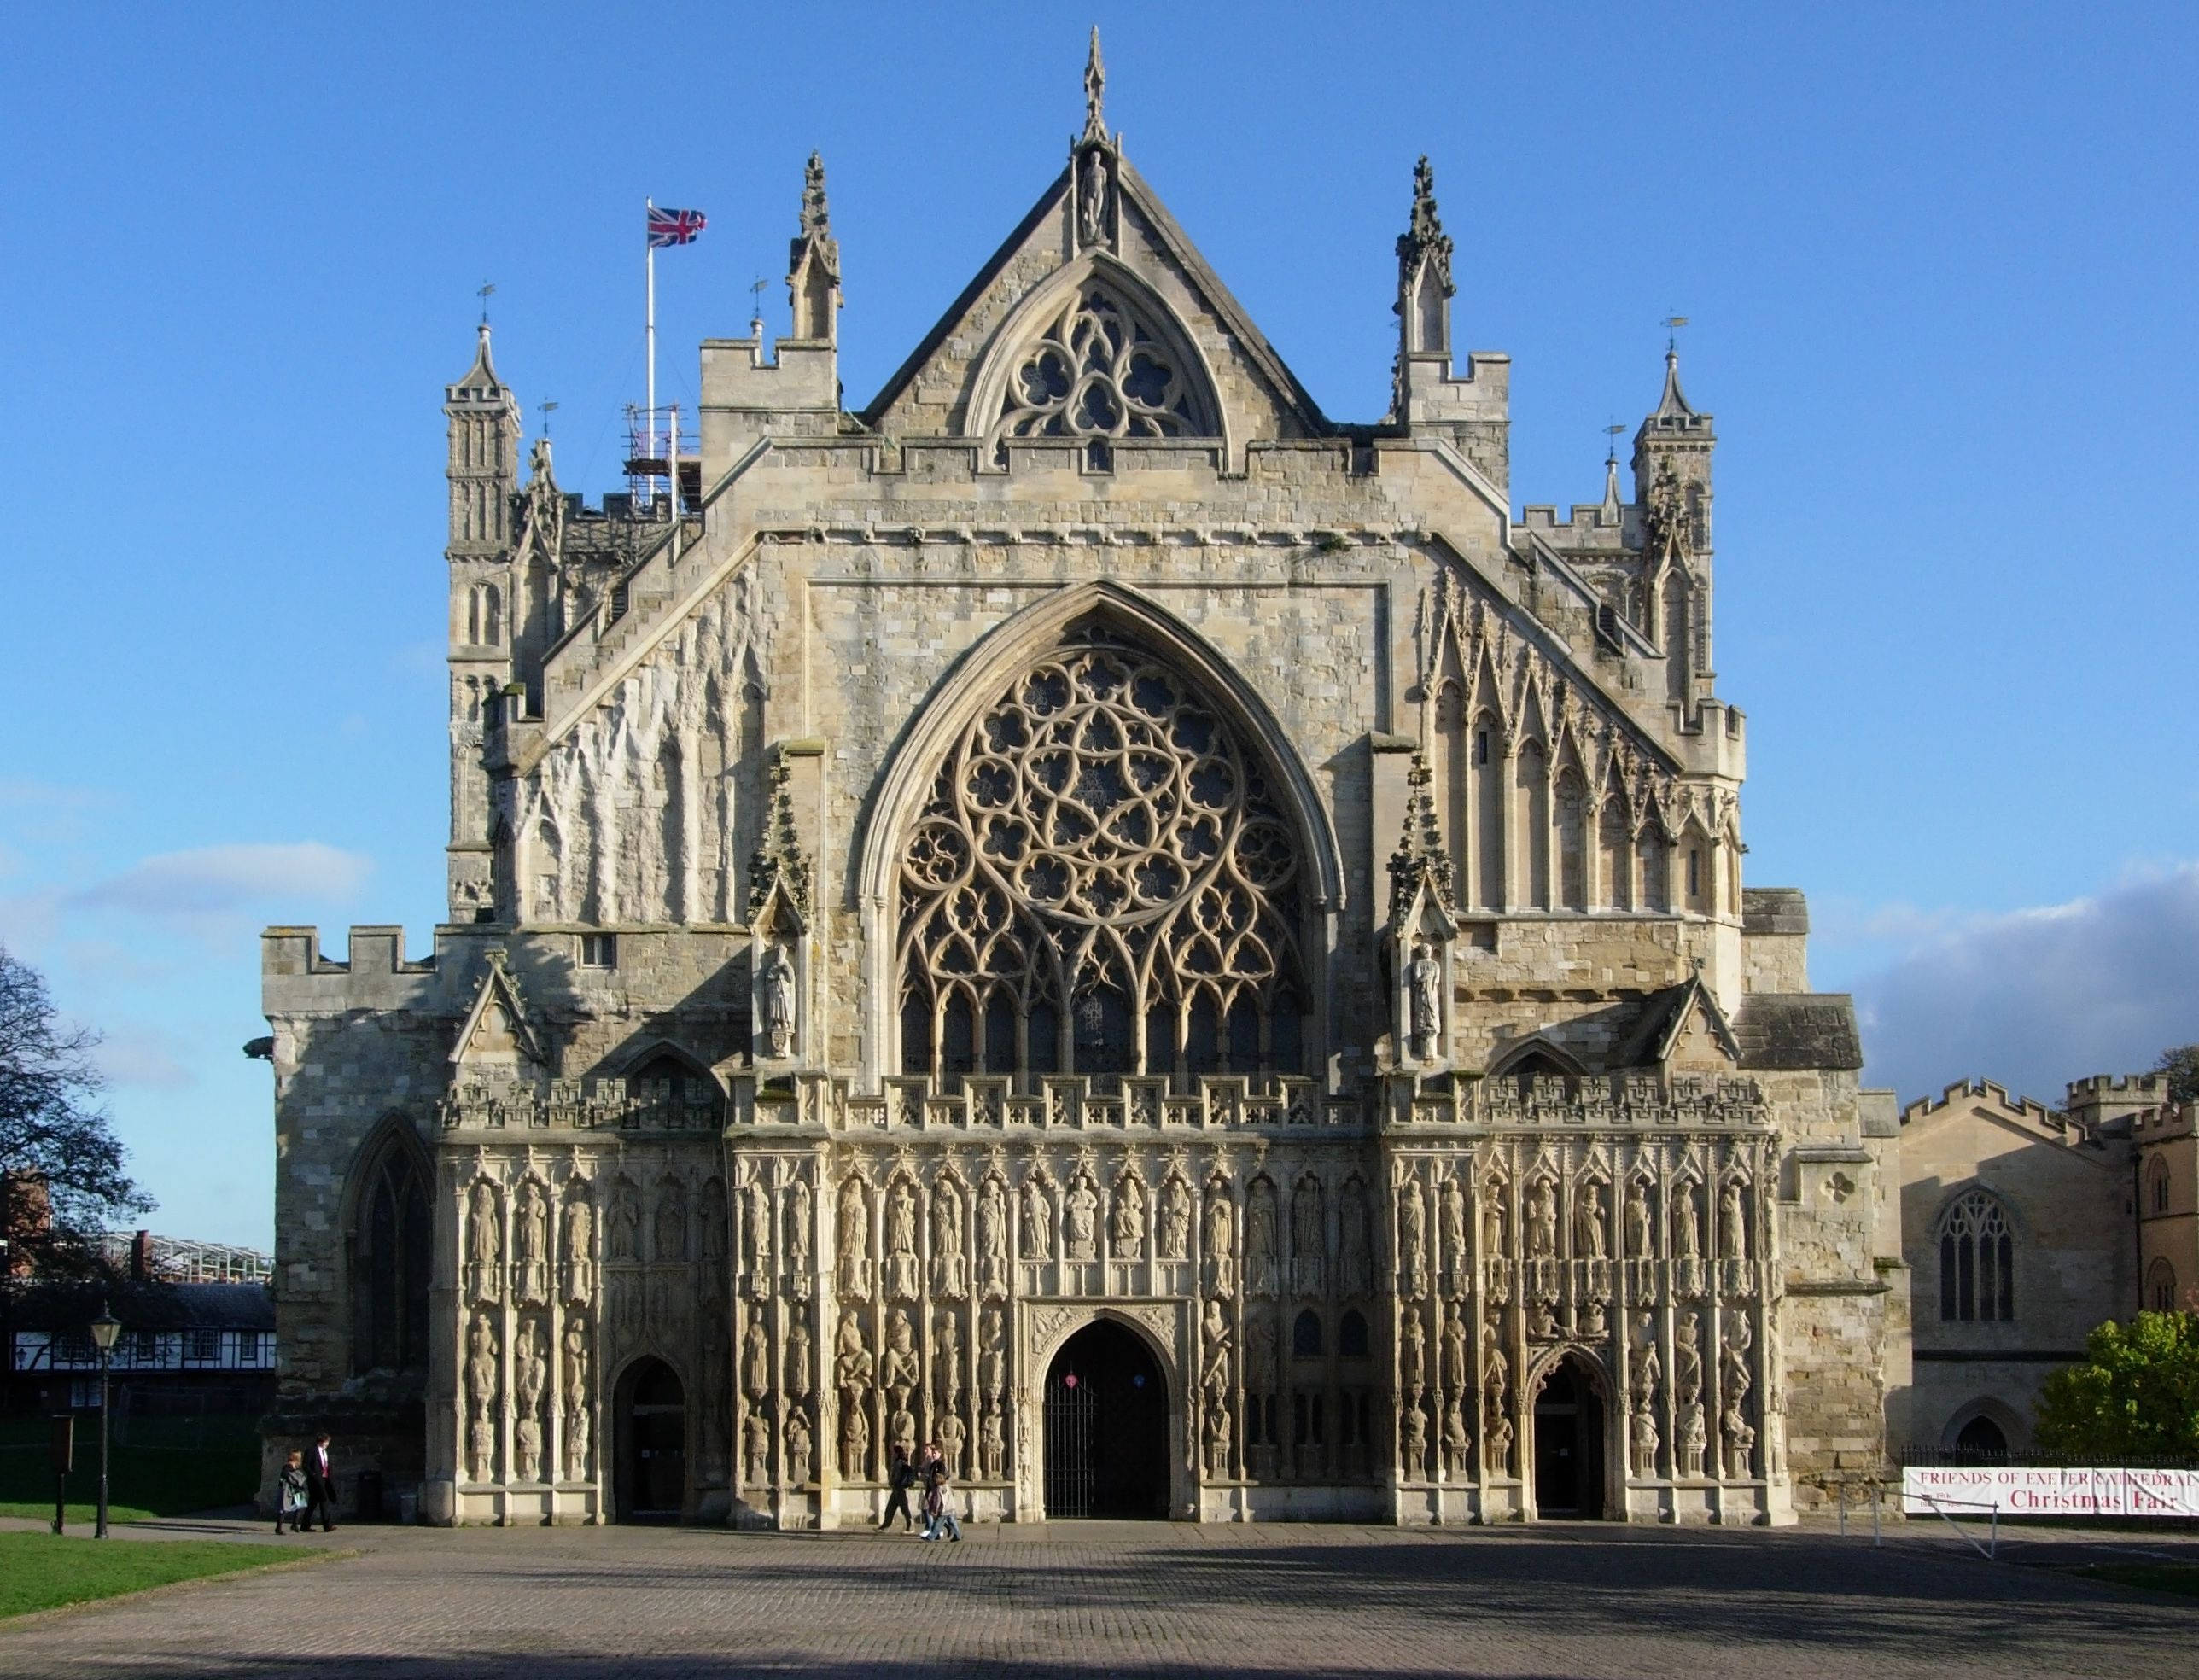 exeter cathedral, the cathedral church of saint peter at exeter, is